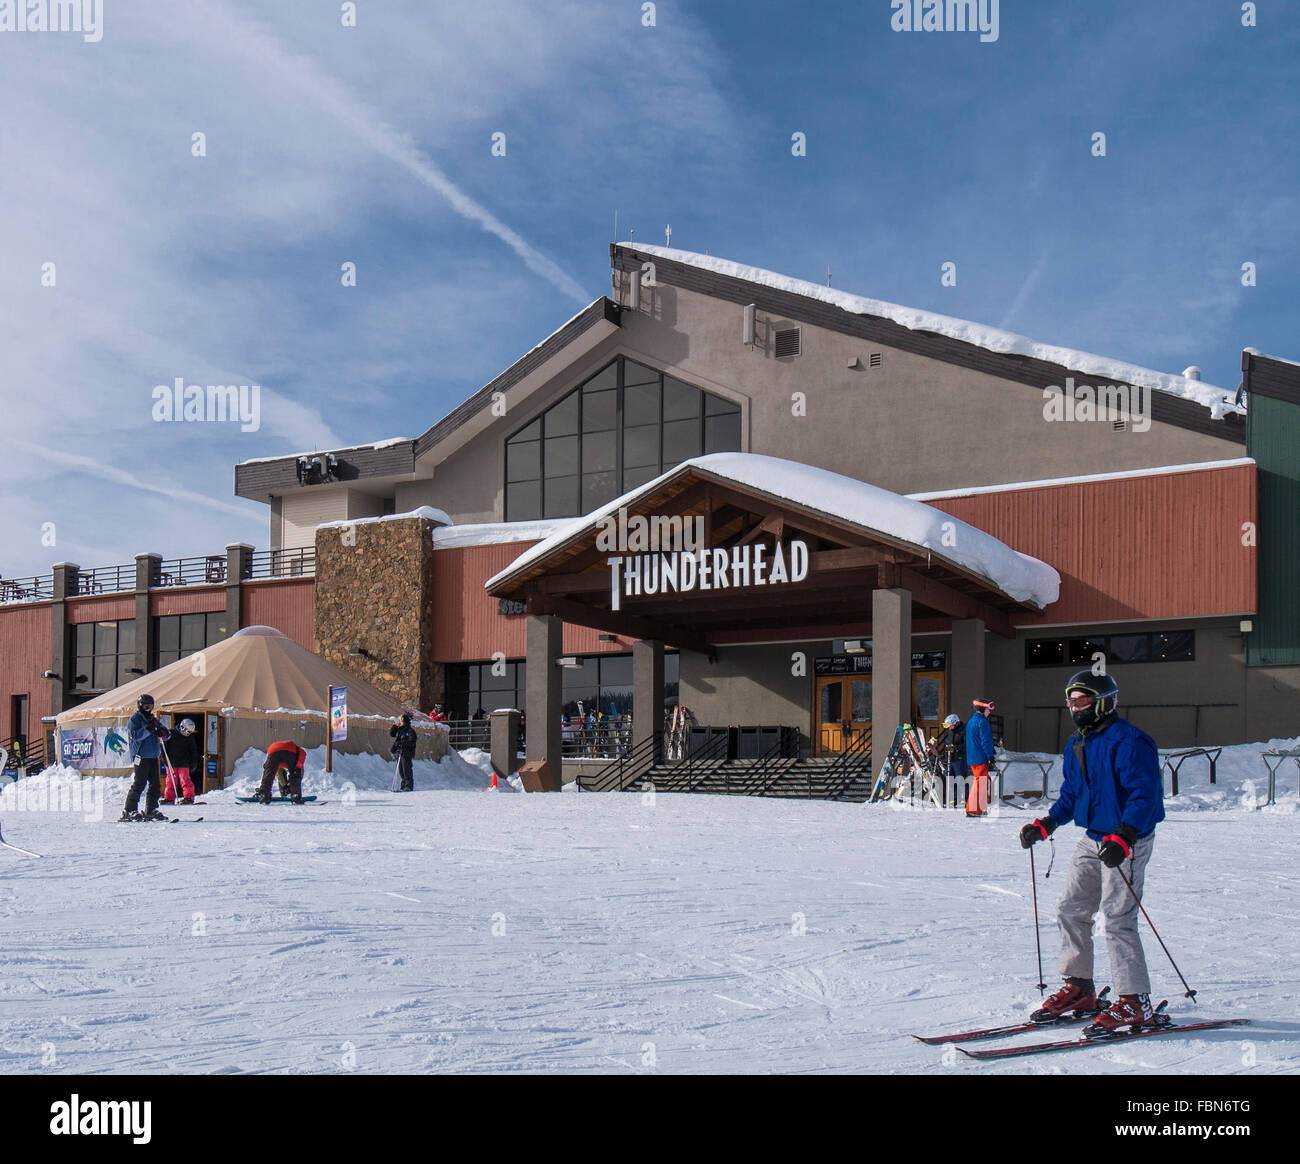 Thunderhead lodge, Steamboat Ski Resort, Steamboat Springs, Colorado. - Stock Image